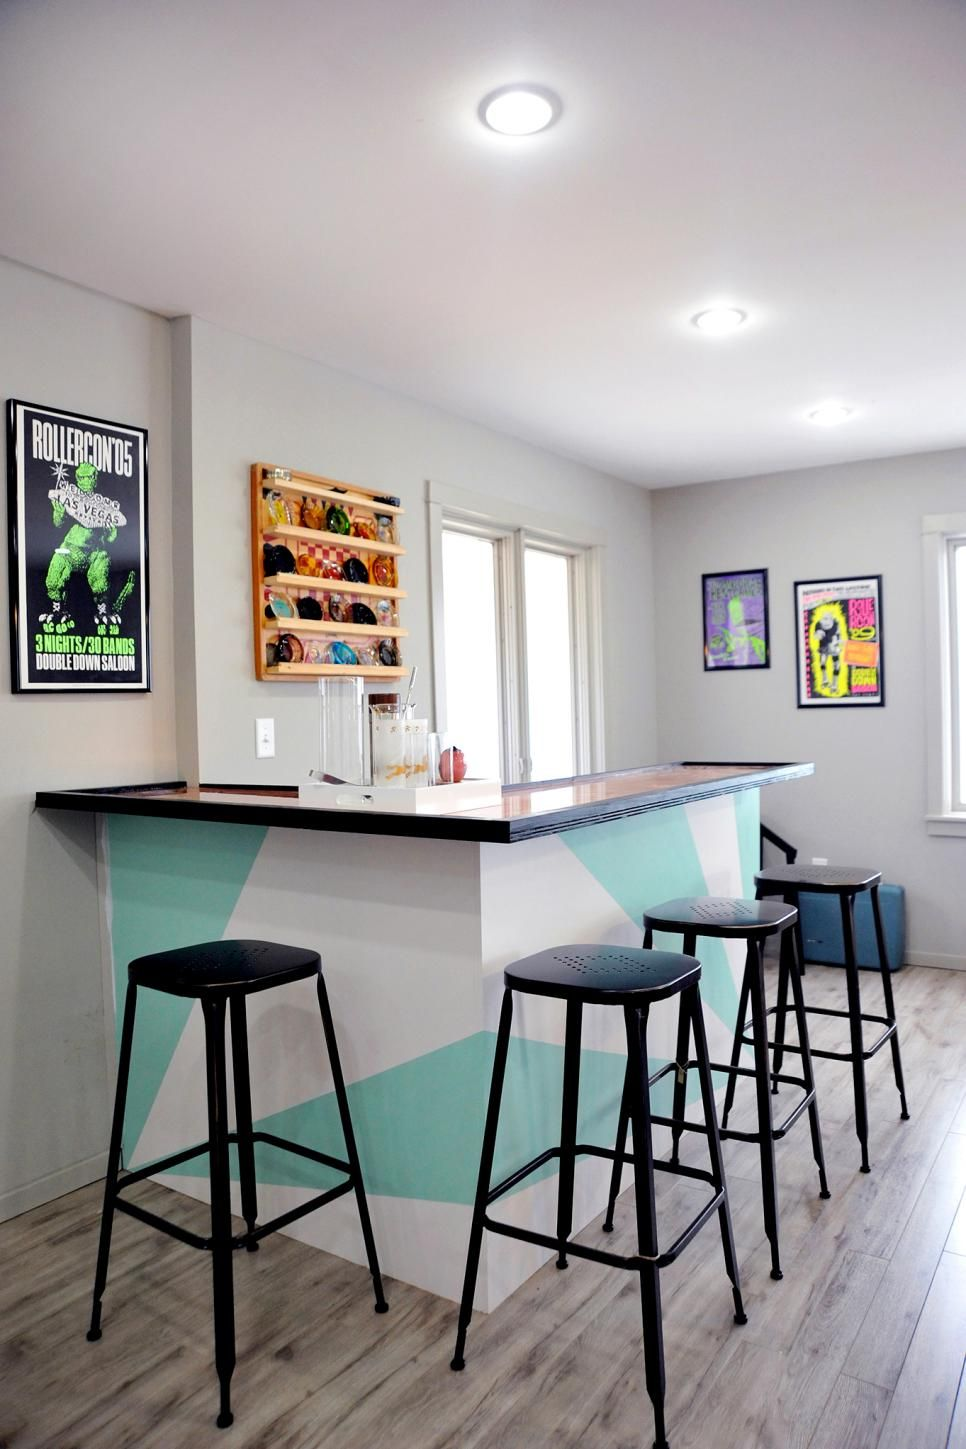 Home Bar Ideas: 89 Design Options | Bonus rooms, Lounge areas and ...